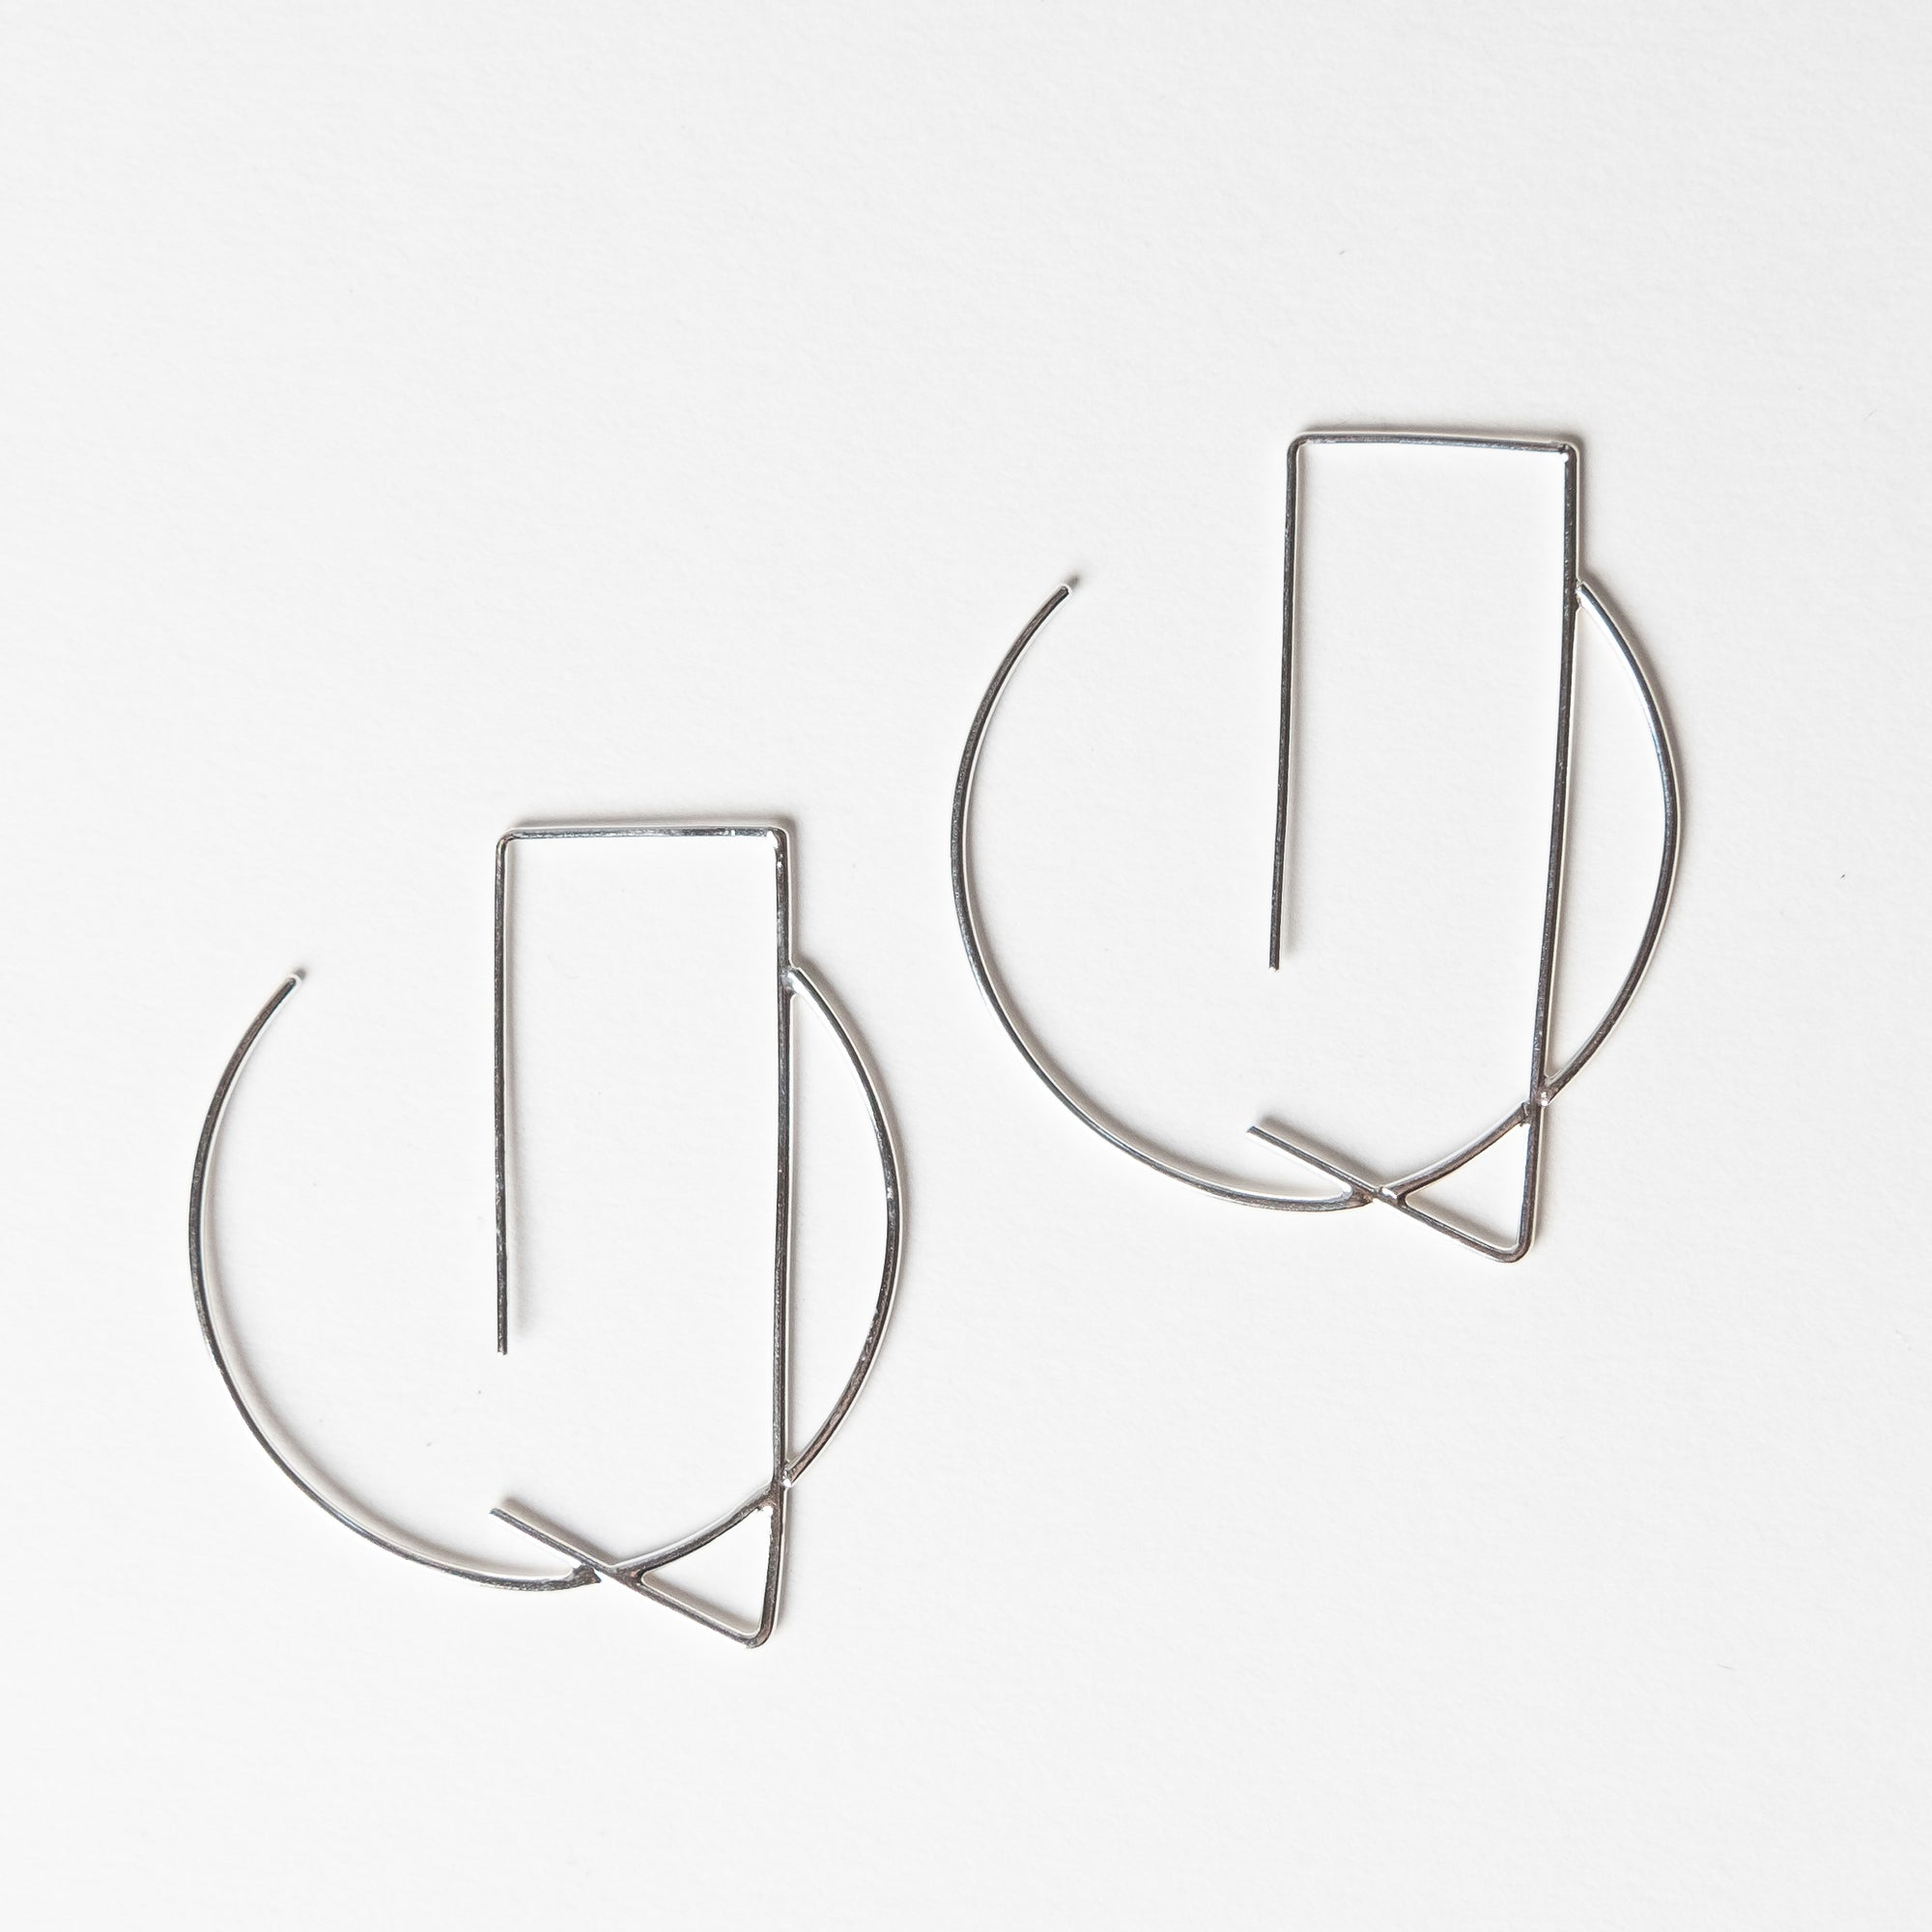 Delicate, silver hoop earrings with rectangular ear wire